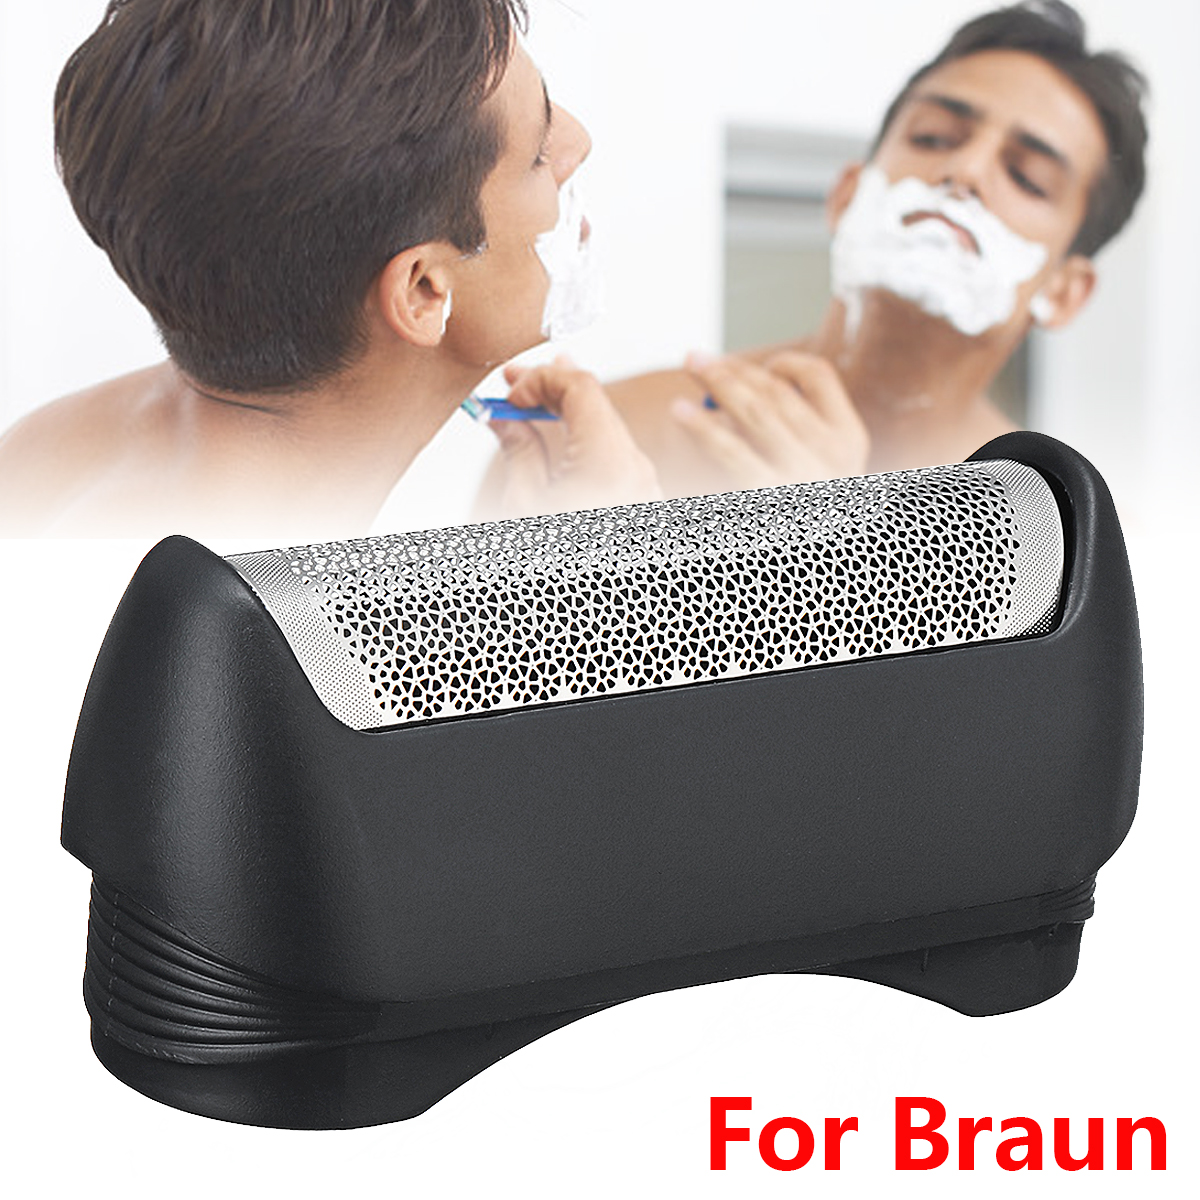 Shaver Replacement Foil For Braun 11B Series 110 120 130 140 150 5682 5684 11B-1000 Personal Care Shaver Accessories Foil NEW